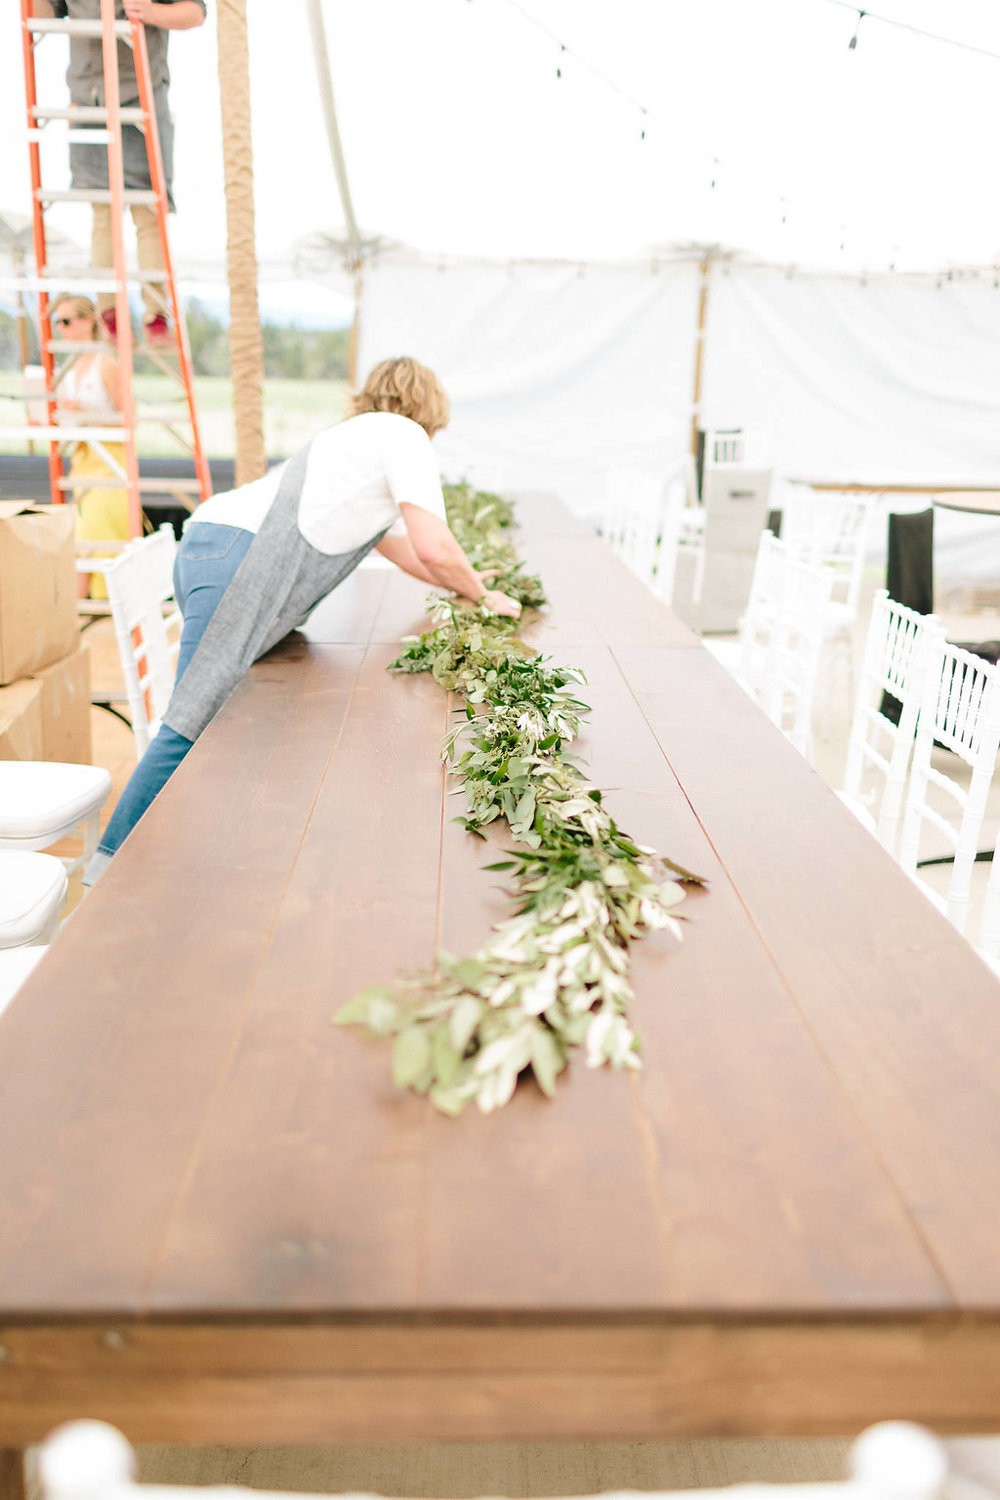 The farm tables were decorated with garlands of greenery and flowers that extended their length.